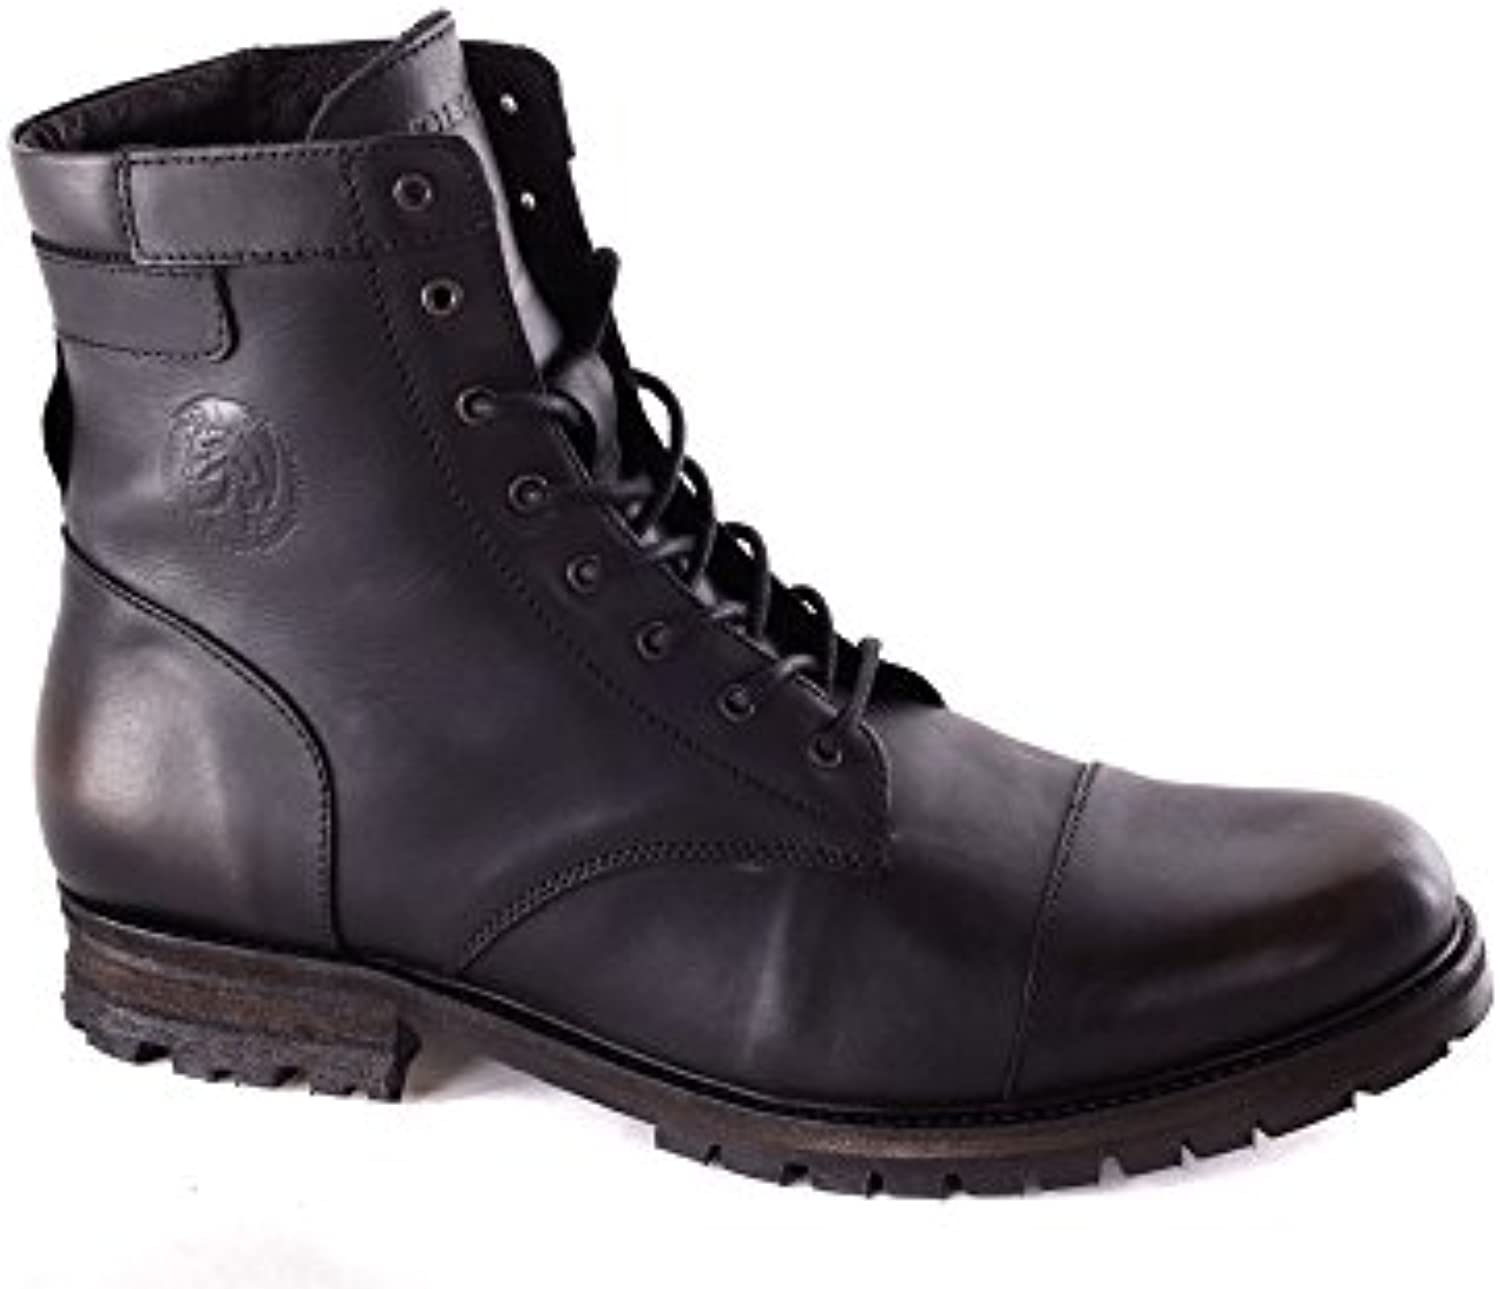 Diesel Botines para hombre BUTCH & CASSIDY NEW CASSIDY